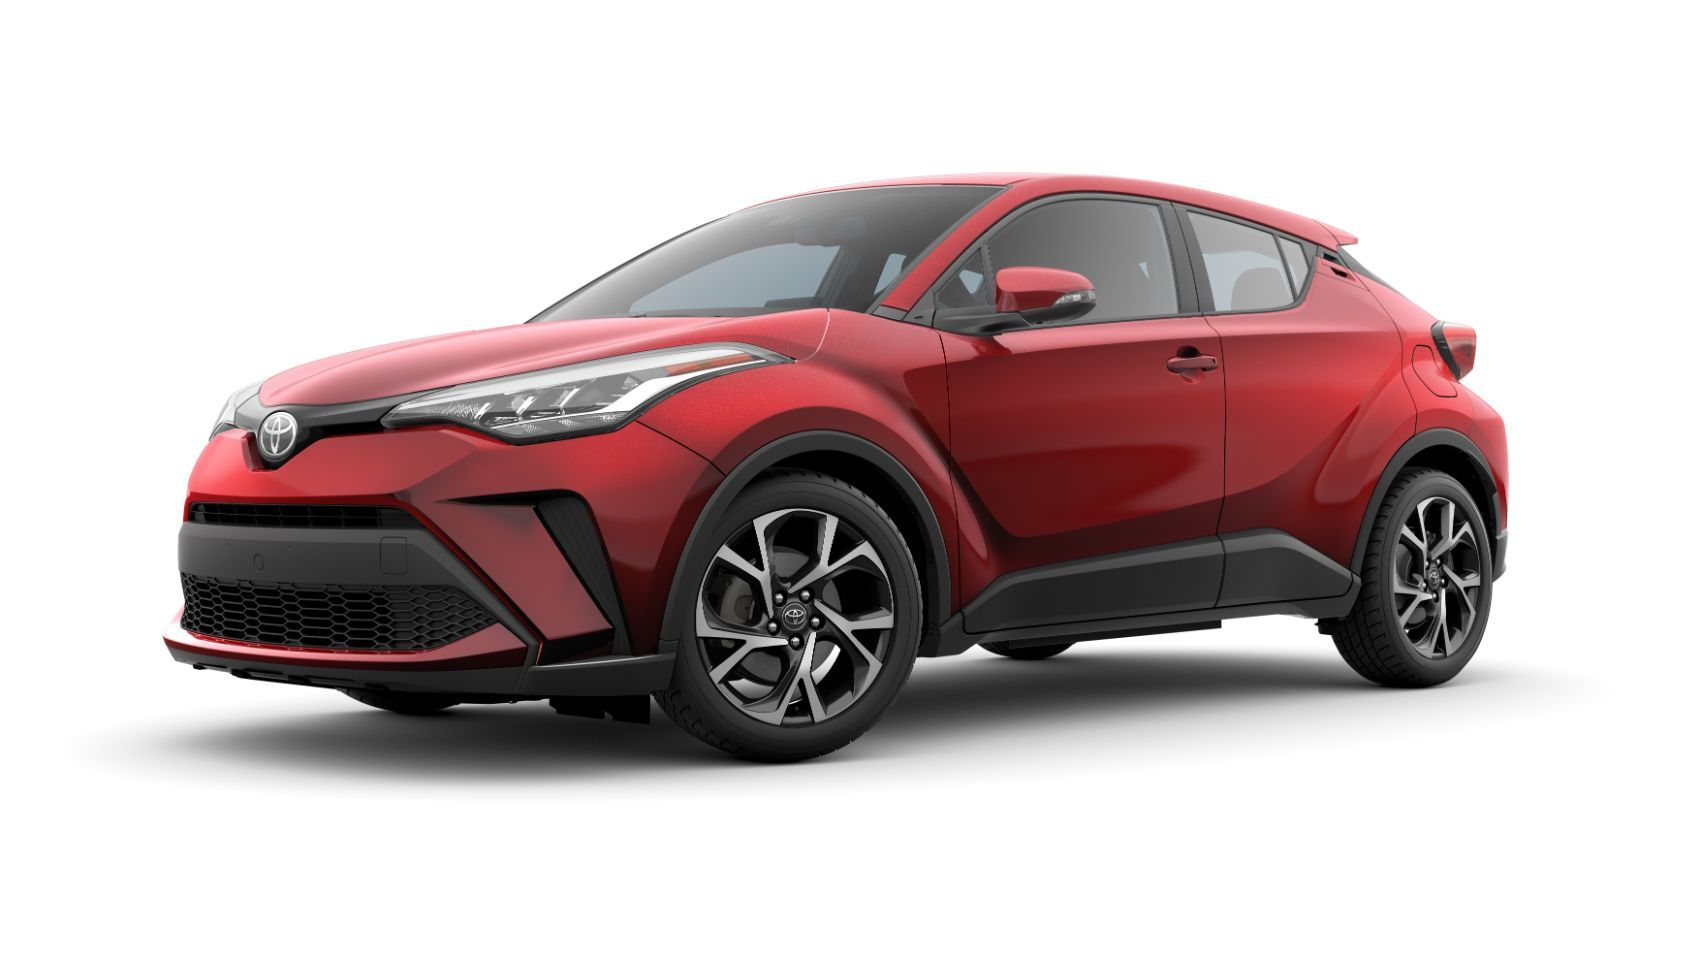 2020 Toyota C-HR Review: How Does It Stack Up & Should You Buy It?